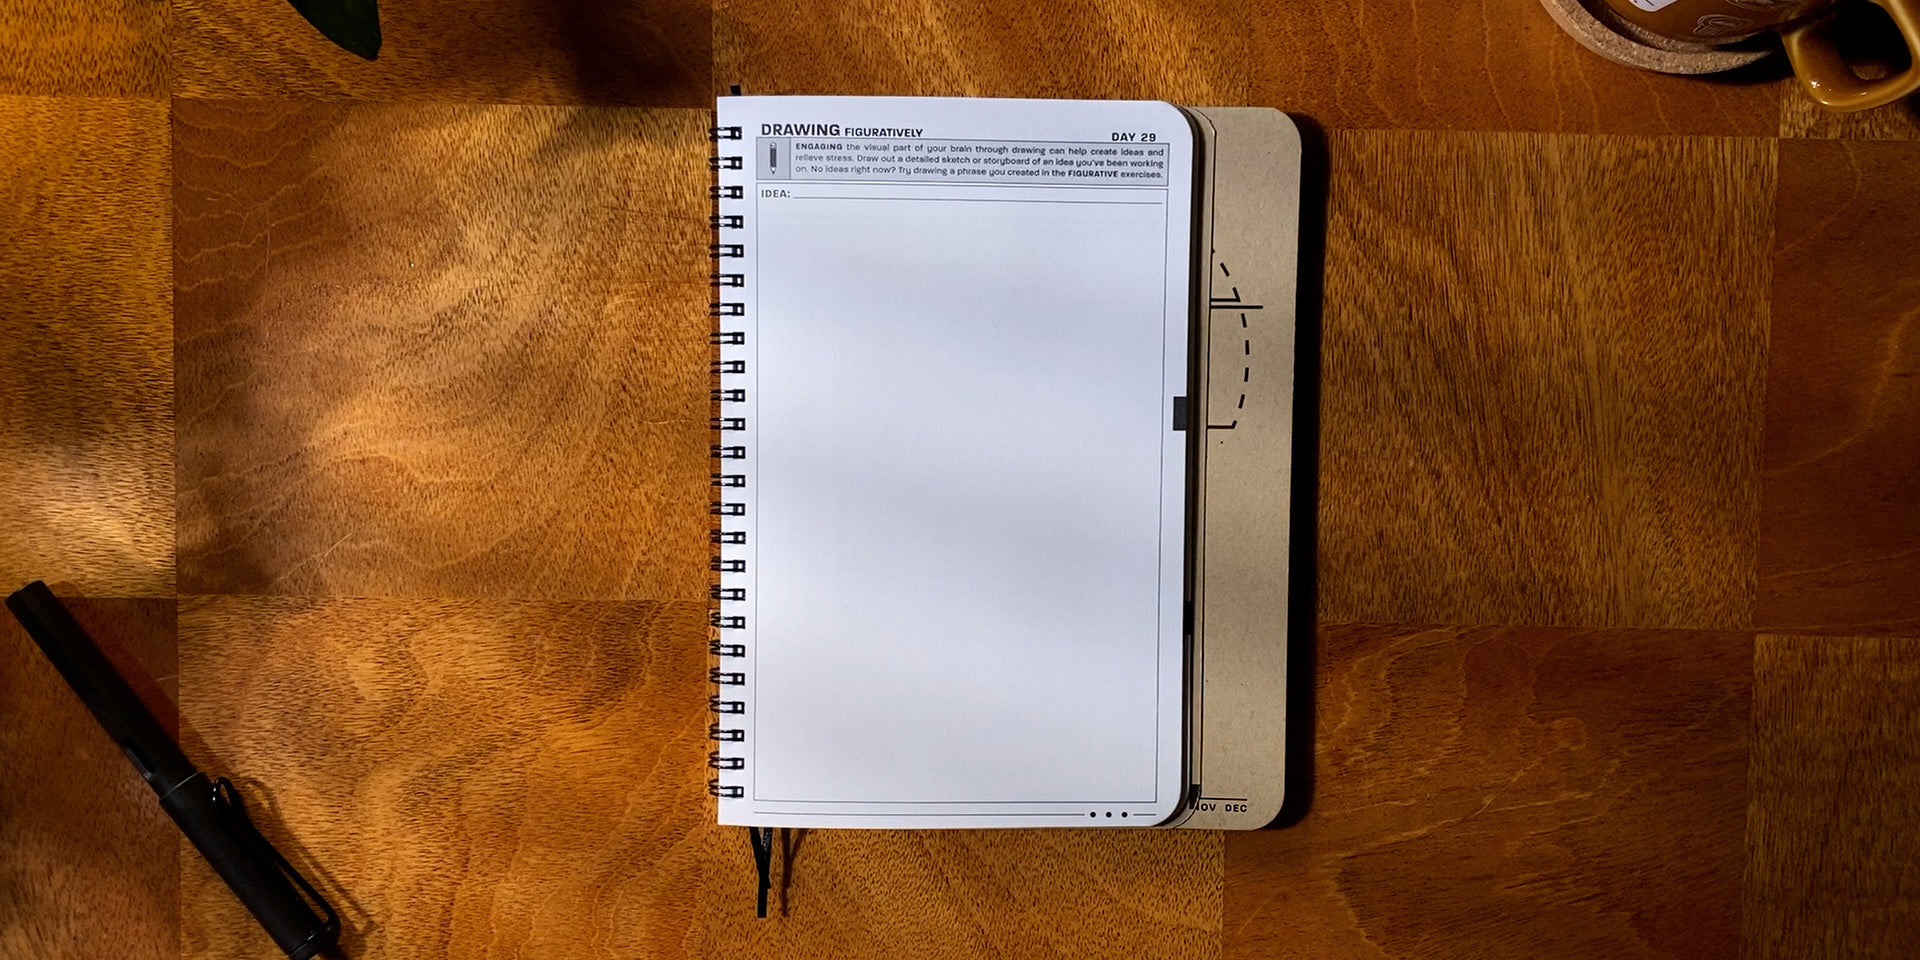 Practice Workbook open to the Drawing Figuratively Exercise